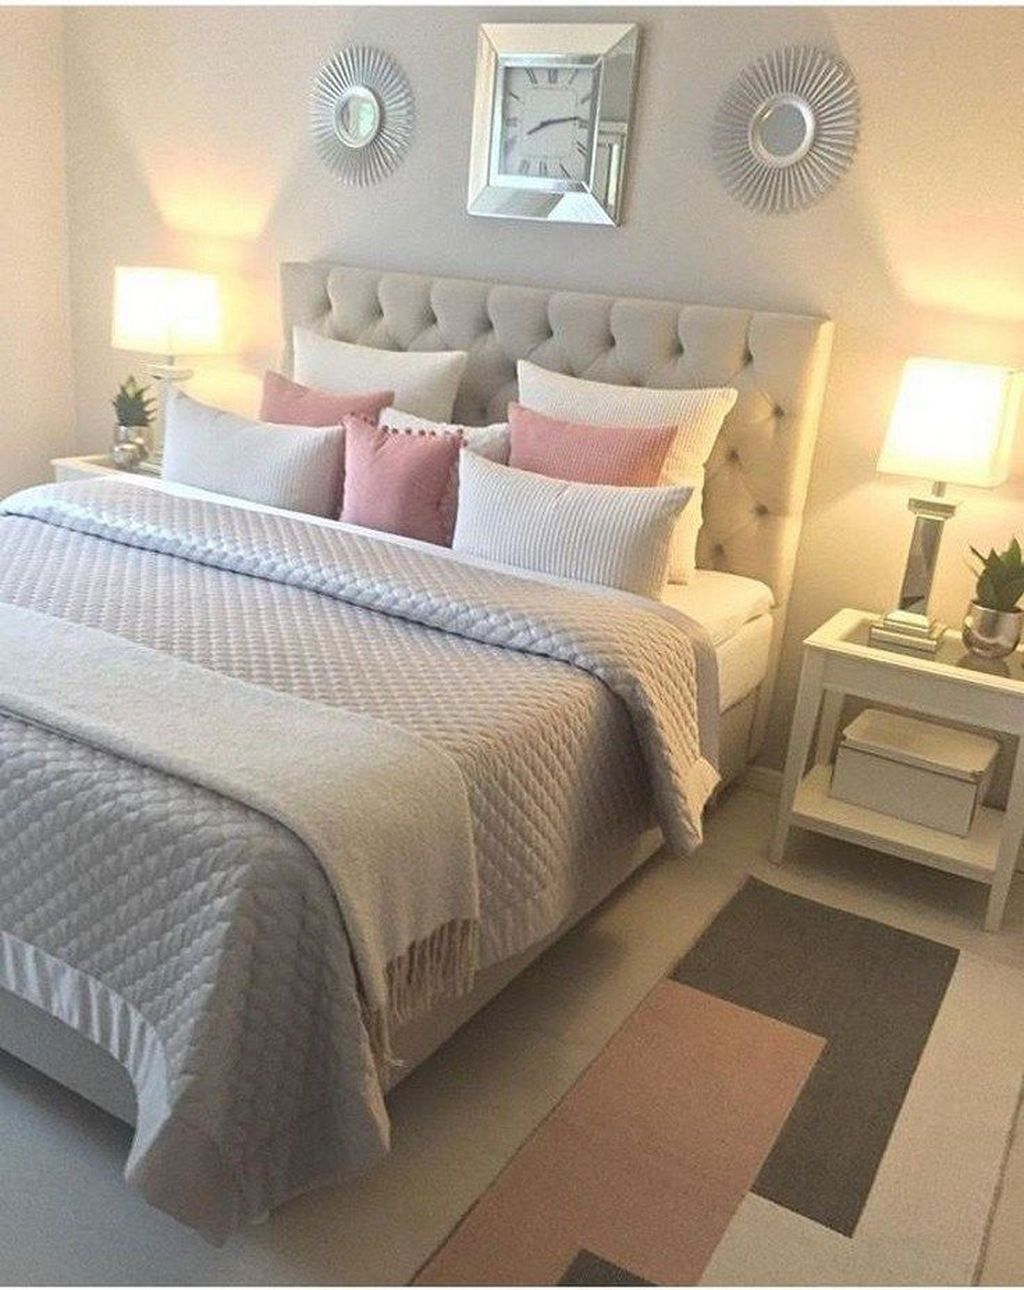 Admirable Small Bedroom Decor Ideas You Never Seen Before 14